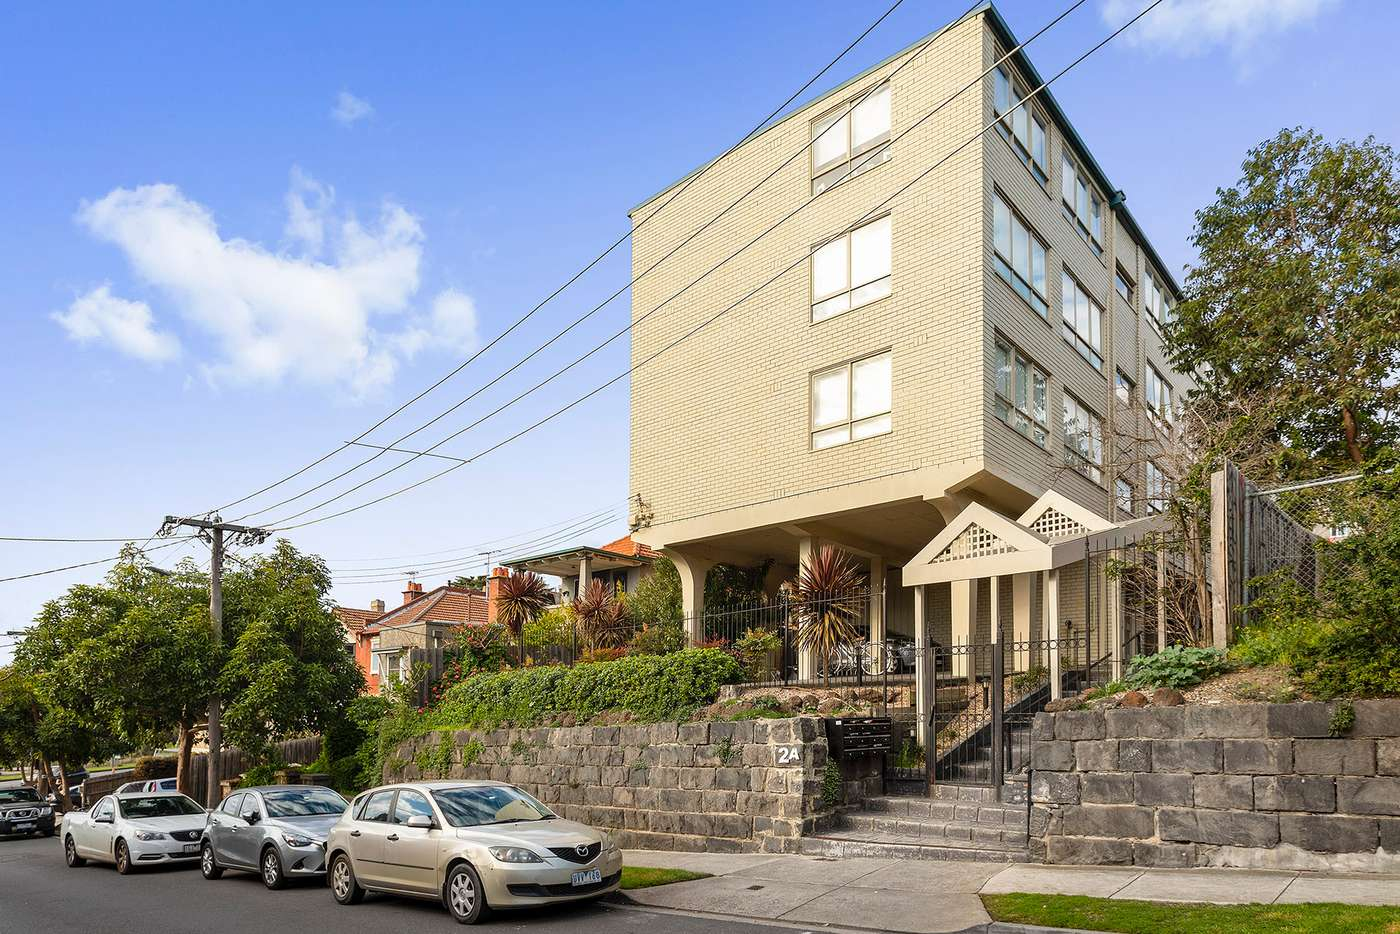 Main view of Homely apartment listing, 1/2A Dobson Street, South Yarra VIC 3141